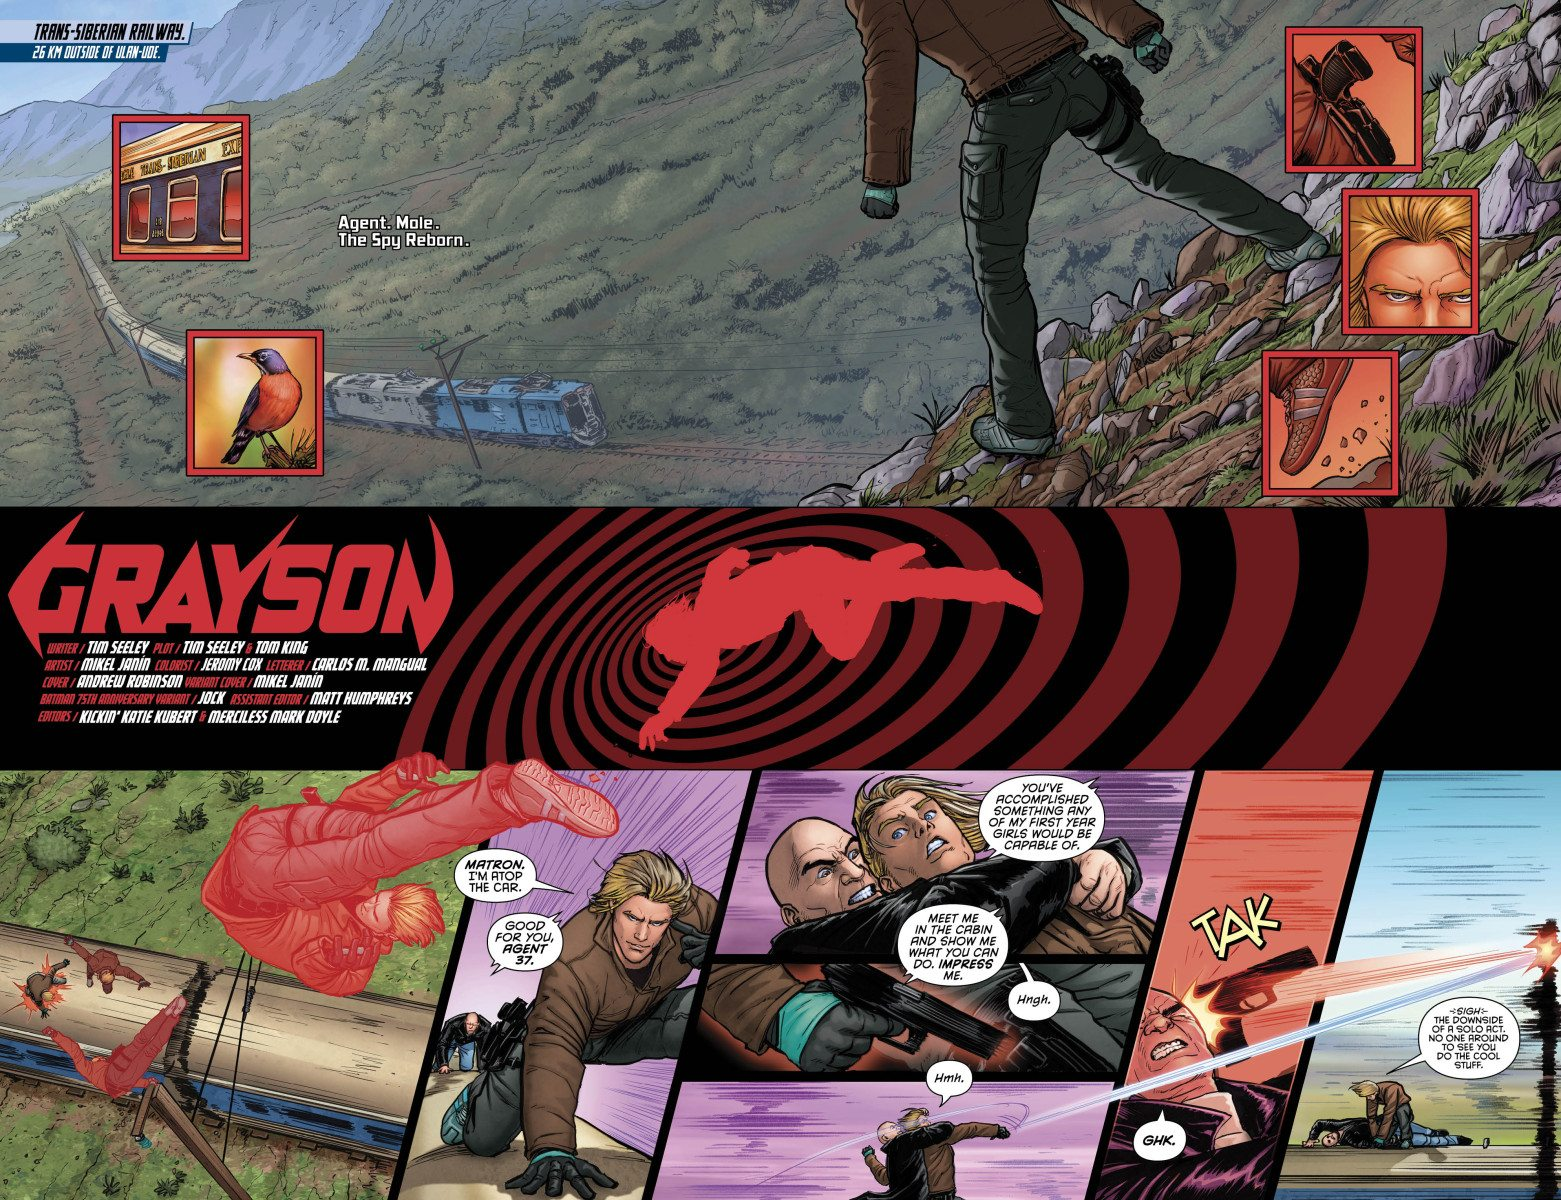 Grayson, Vol. 1, Pages 2 & 3, Courtesy of DC Comics